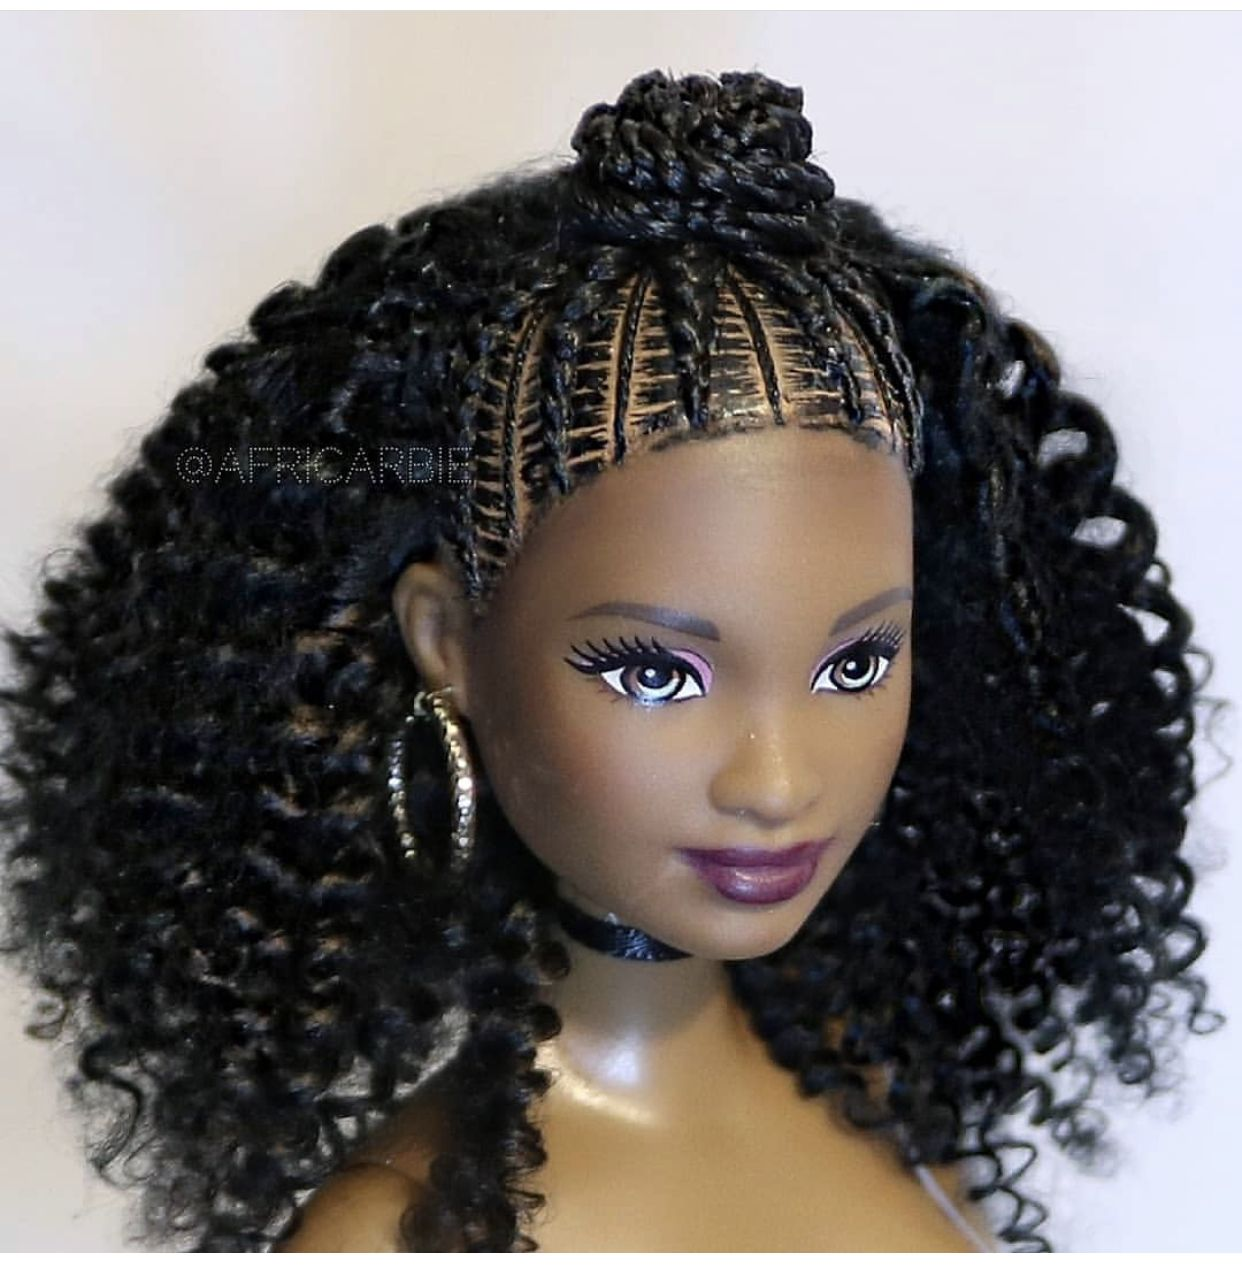 These Dolls Created By Doll Designer Africarbi Are To Die For Emily Cottontop Natural Hair Doll Barbie Hair Natural Hair Styles